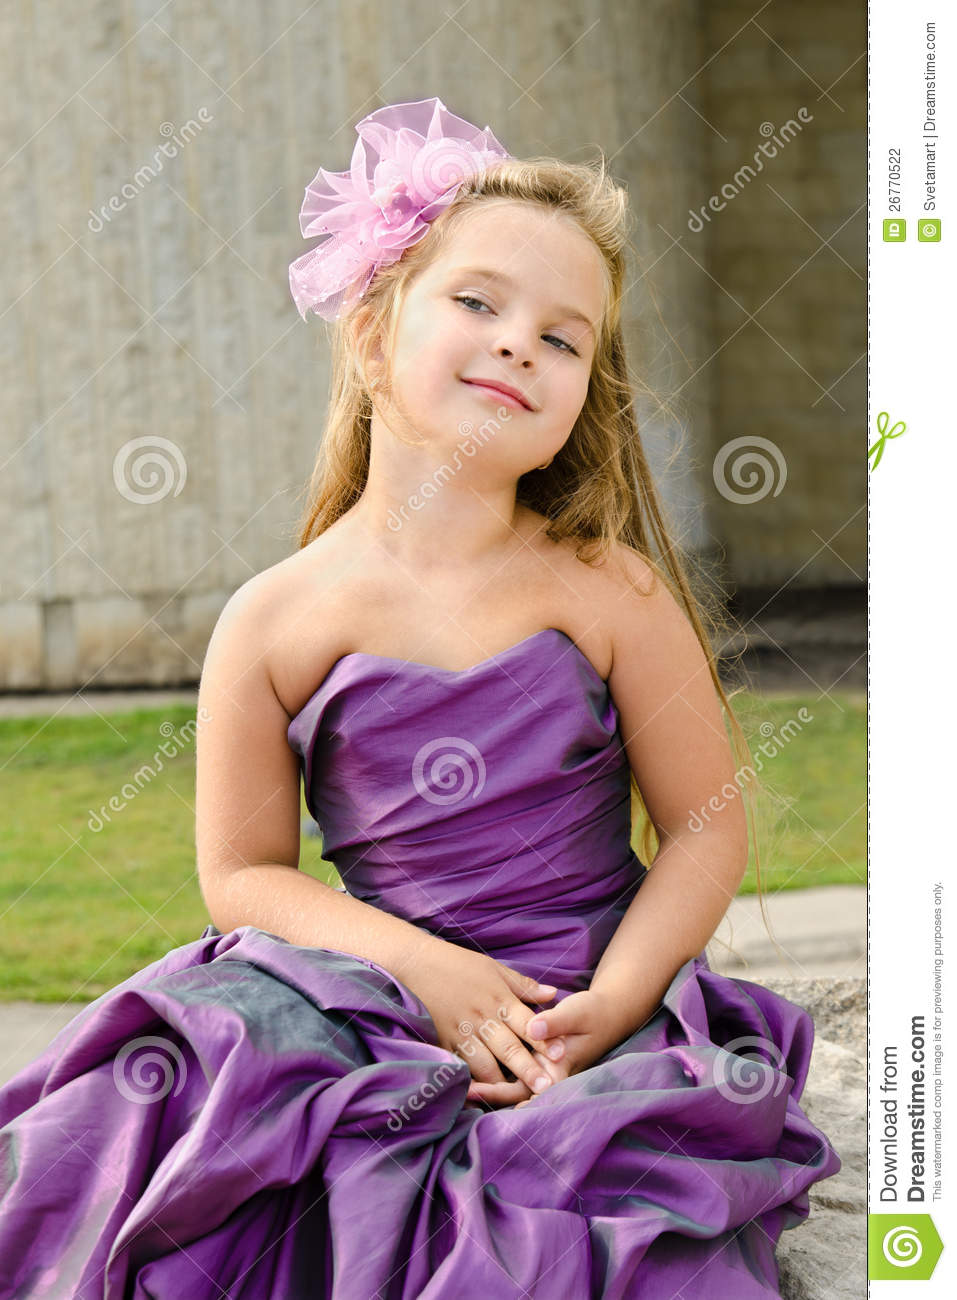 portrait of cute little girl in princess dress stock photo - image